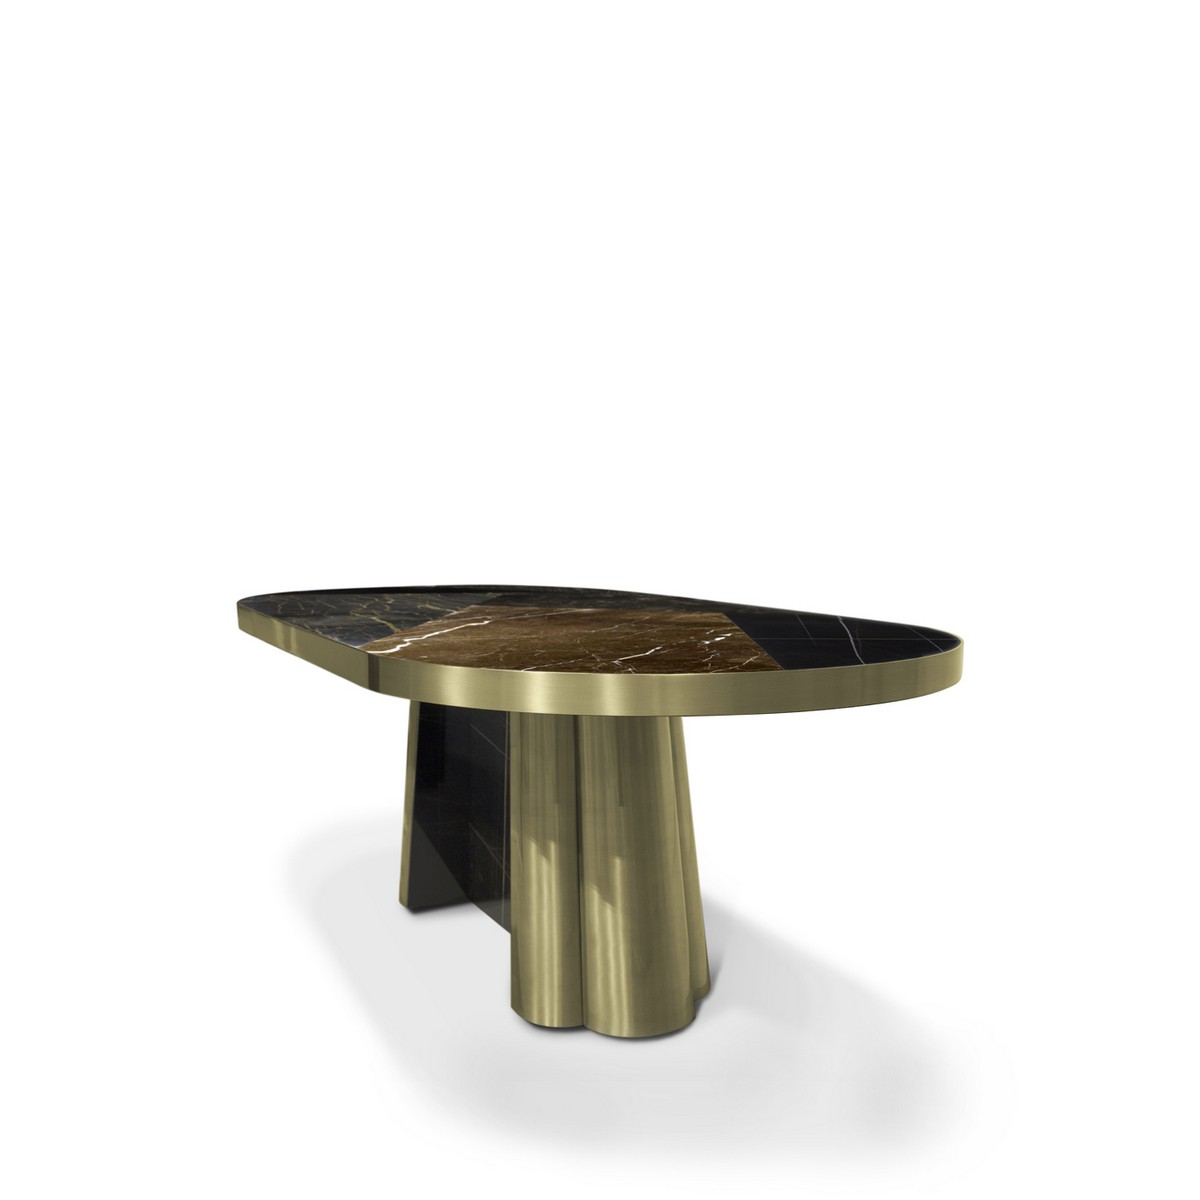 The Decodiva Dining Table: Craftsmanship Meets Contemporary Design contemporary design The Decodiva Dining Table: Craftsmanship Meets Contemporary Design 3 2